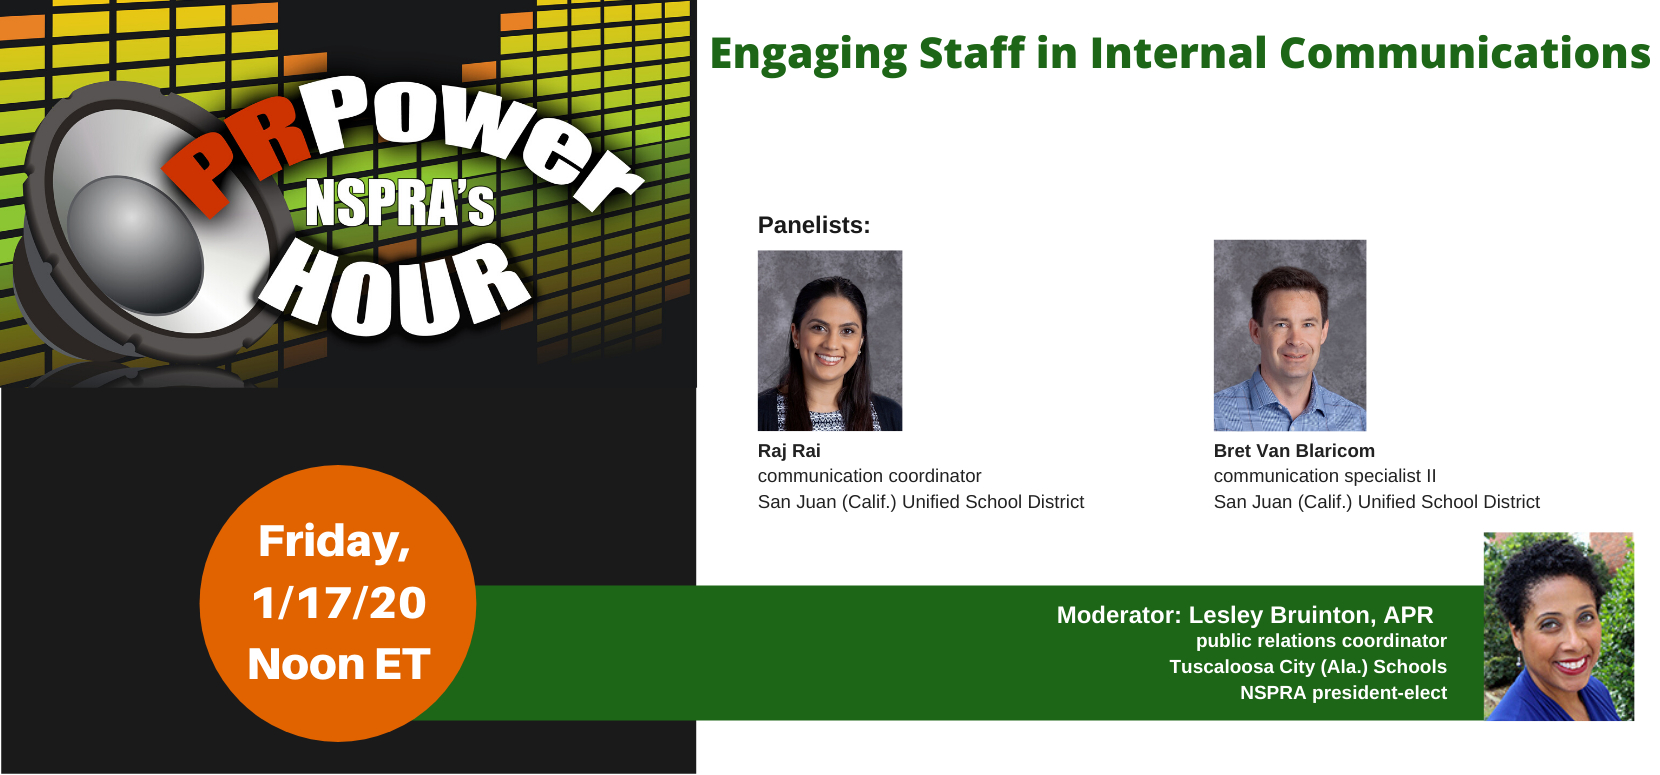 January PR Power Hour: Engaging Staff in Internal Communications